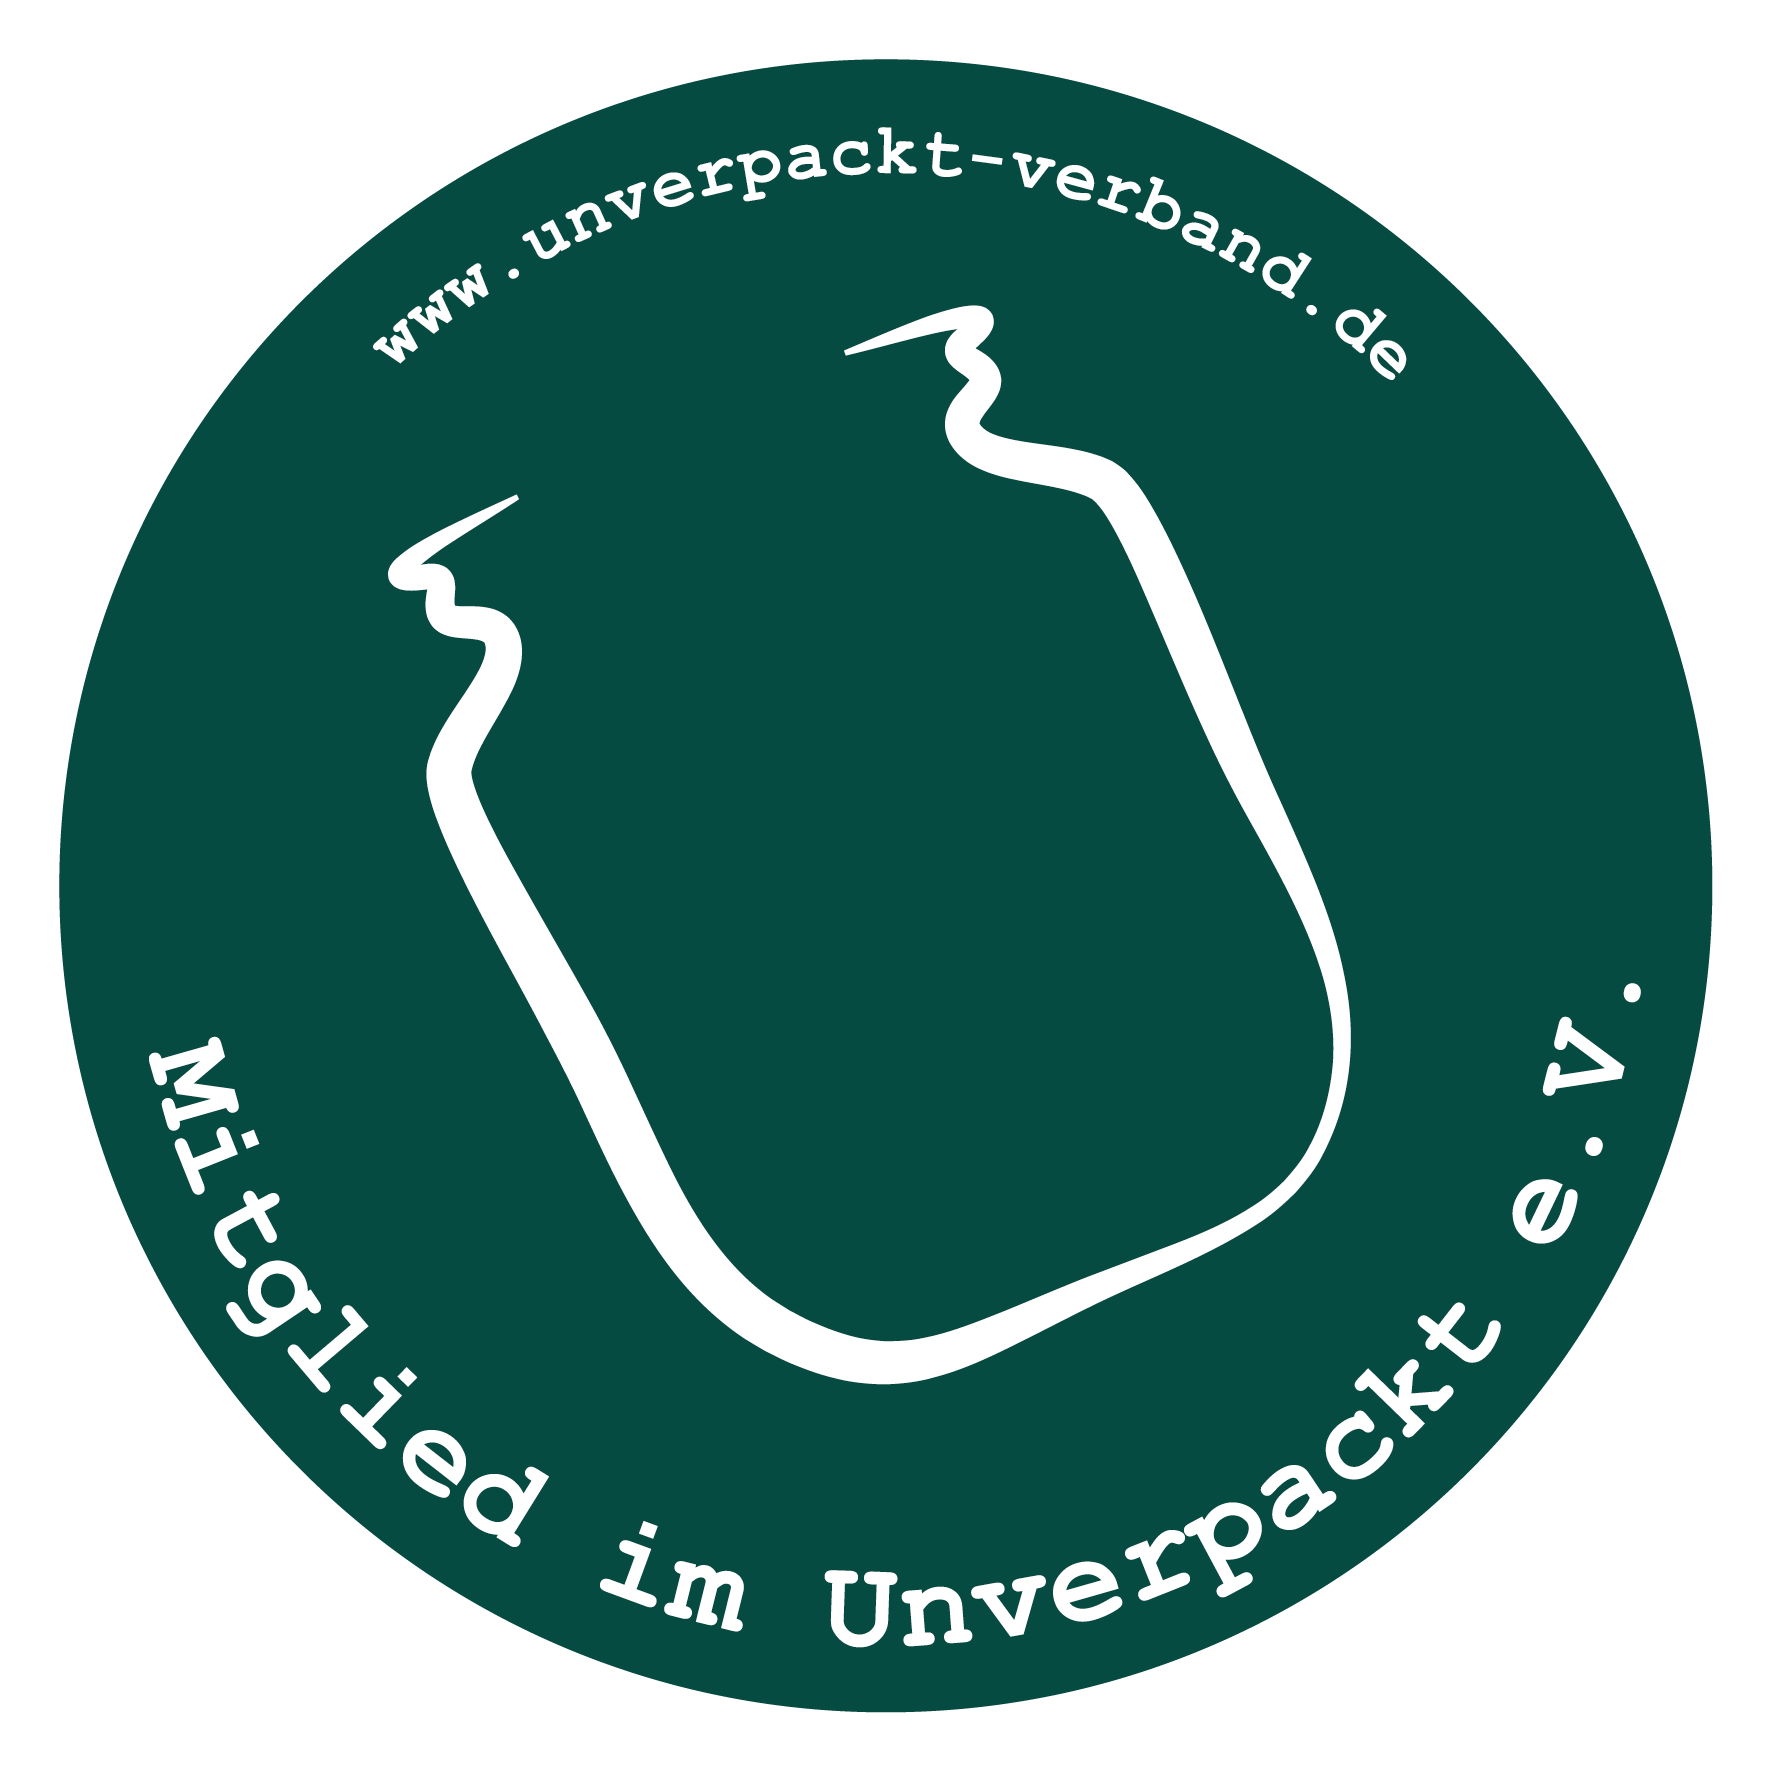 Unverpackt Verband Logo